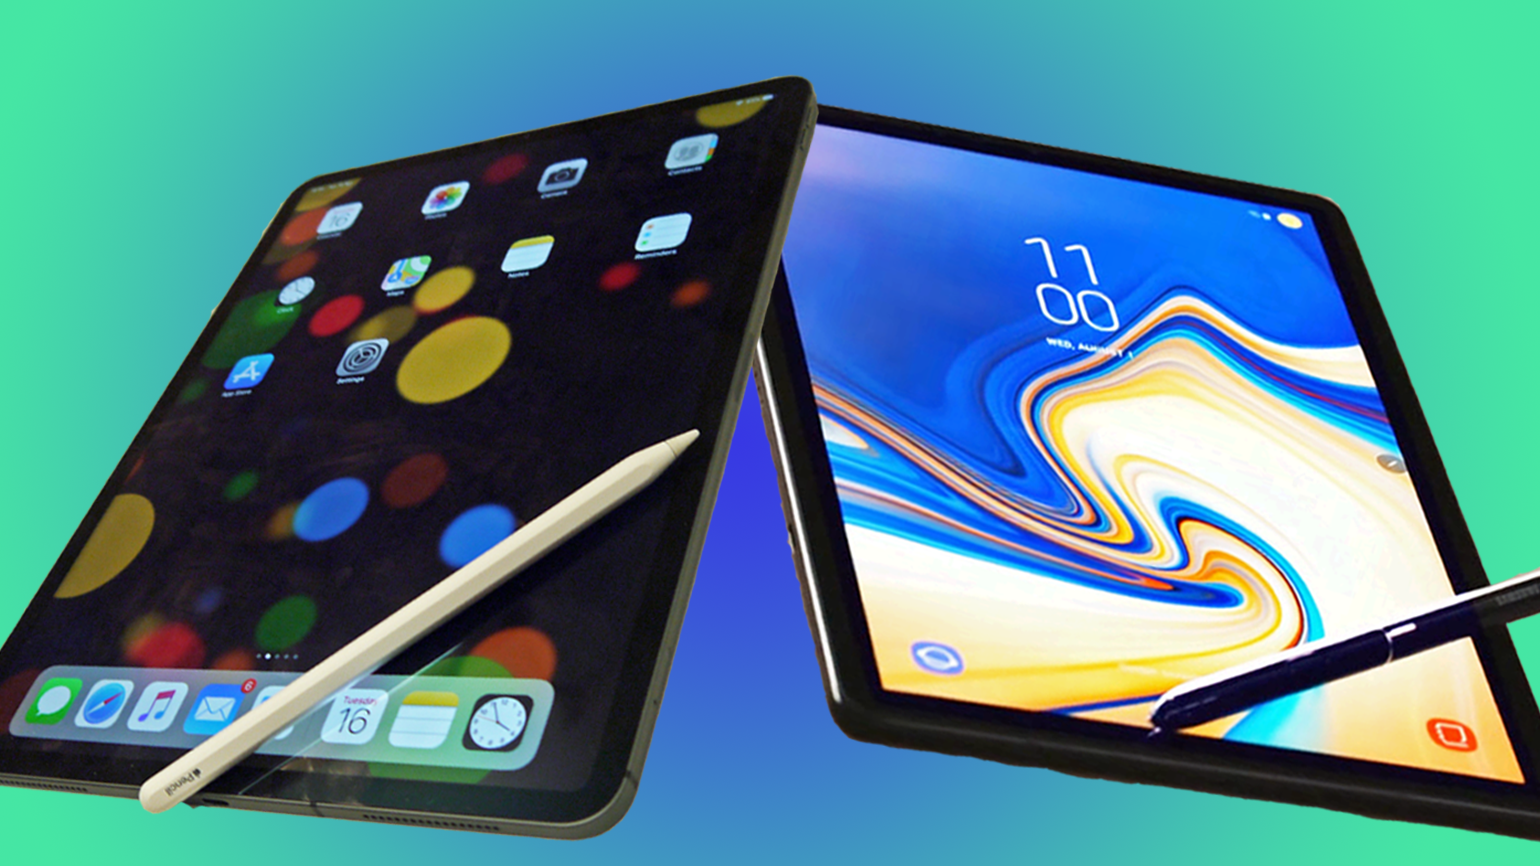 Ipad Pro 12 9 2018 Vs Samsung Galaxy Tab S4 What S The Best Premium Tablet Available Now Techradar